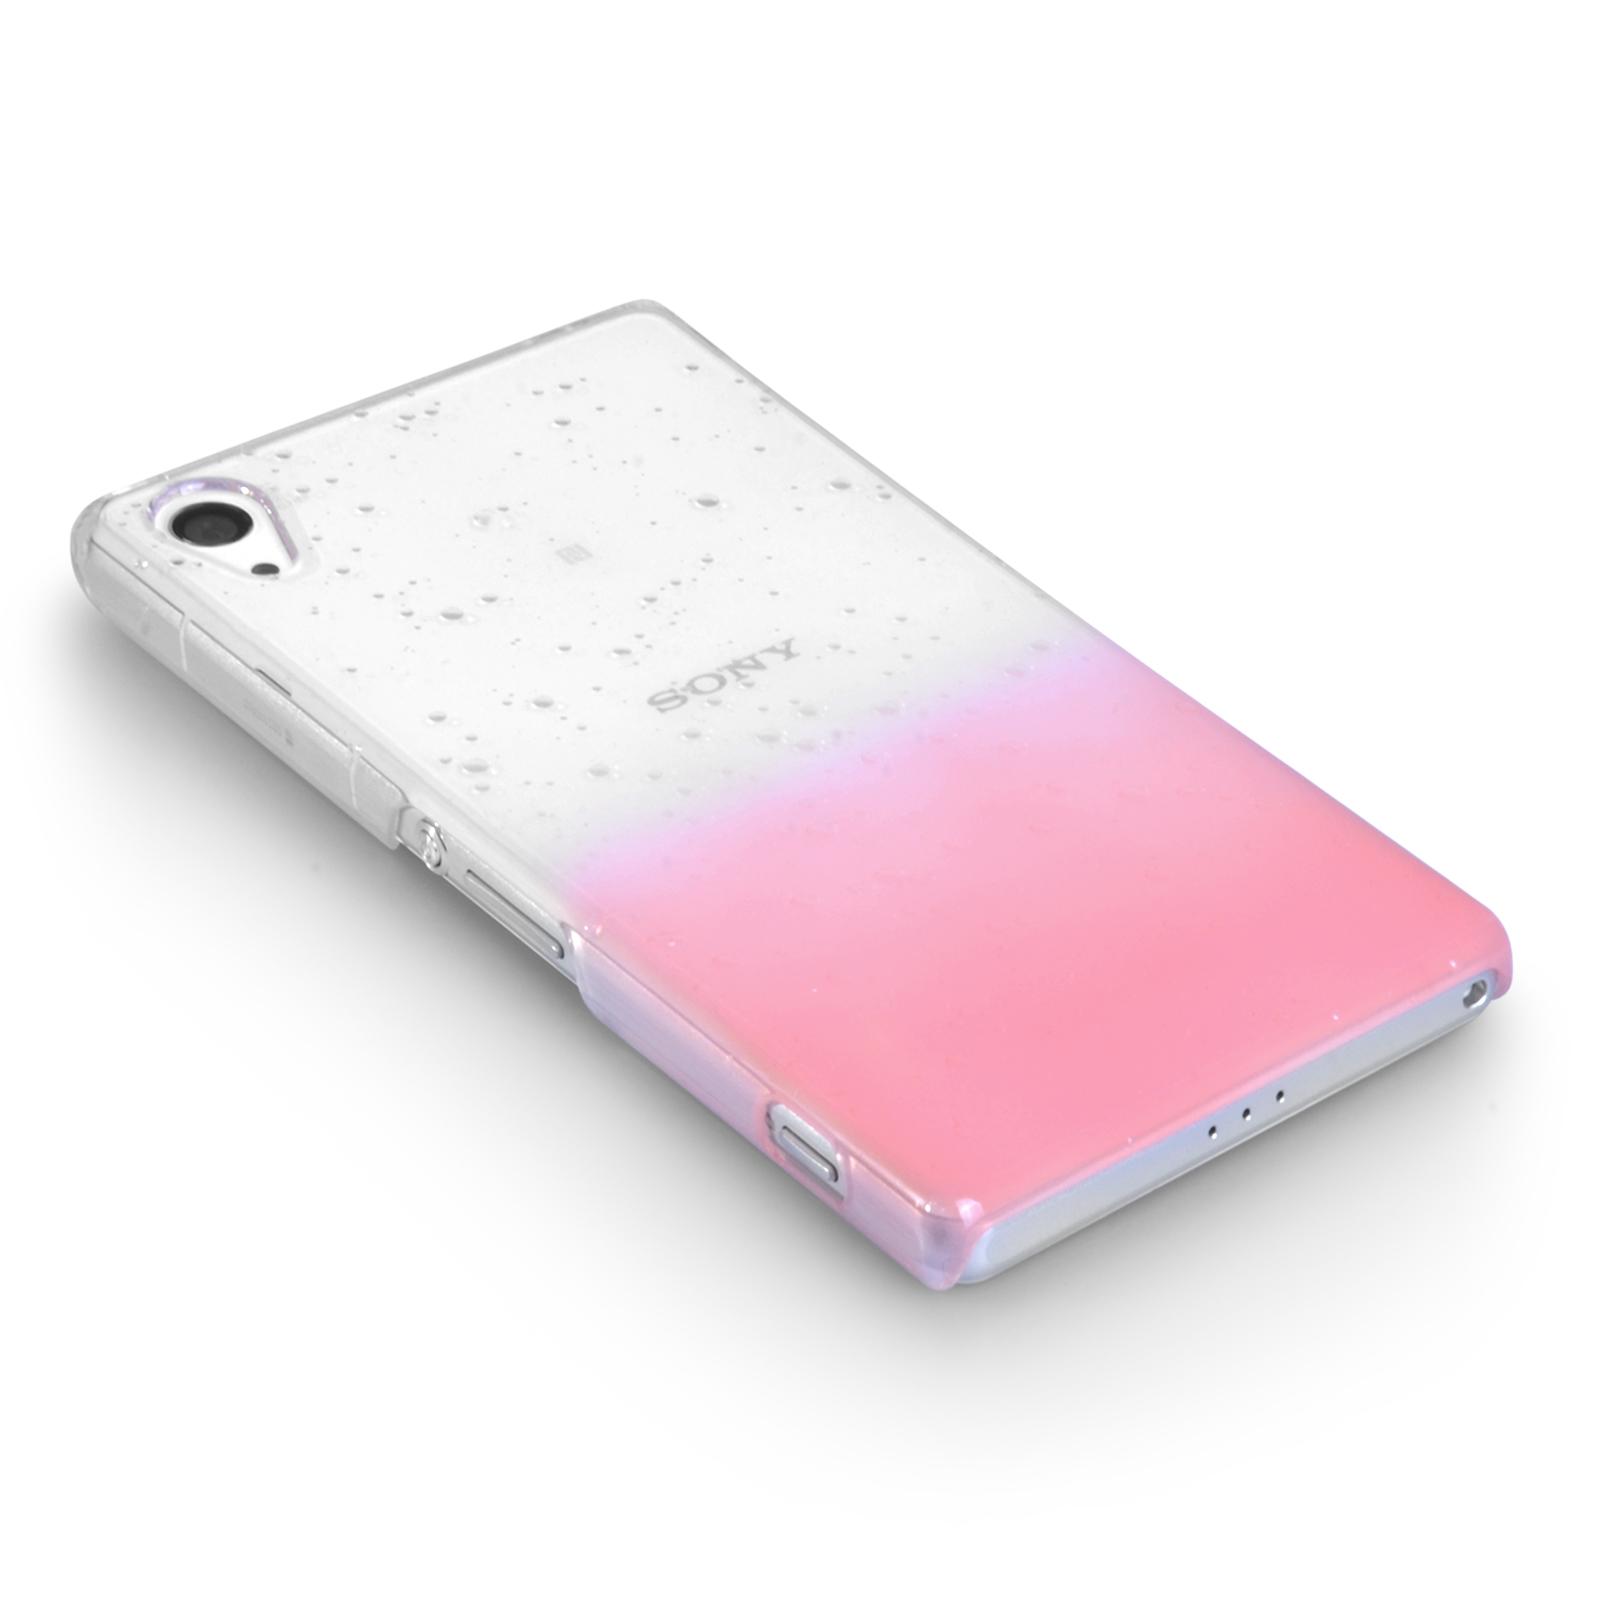 YouSave Sony Xperia Z2 Raindrop Hard Case - Baby Pink-Clear